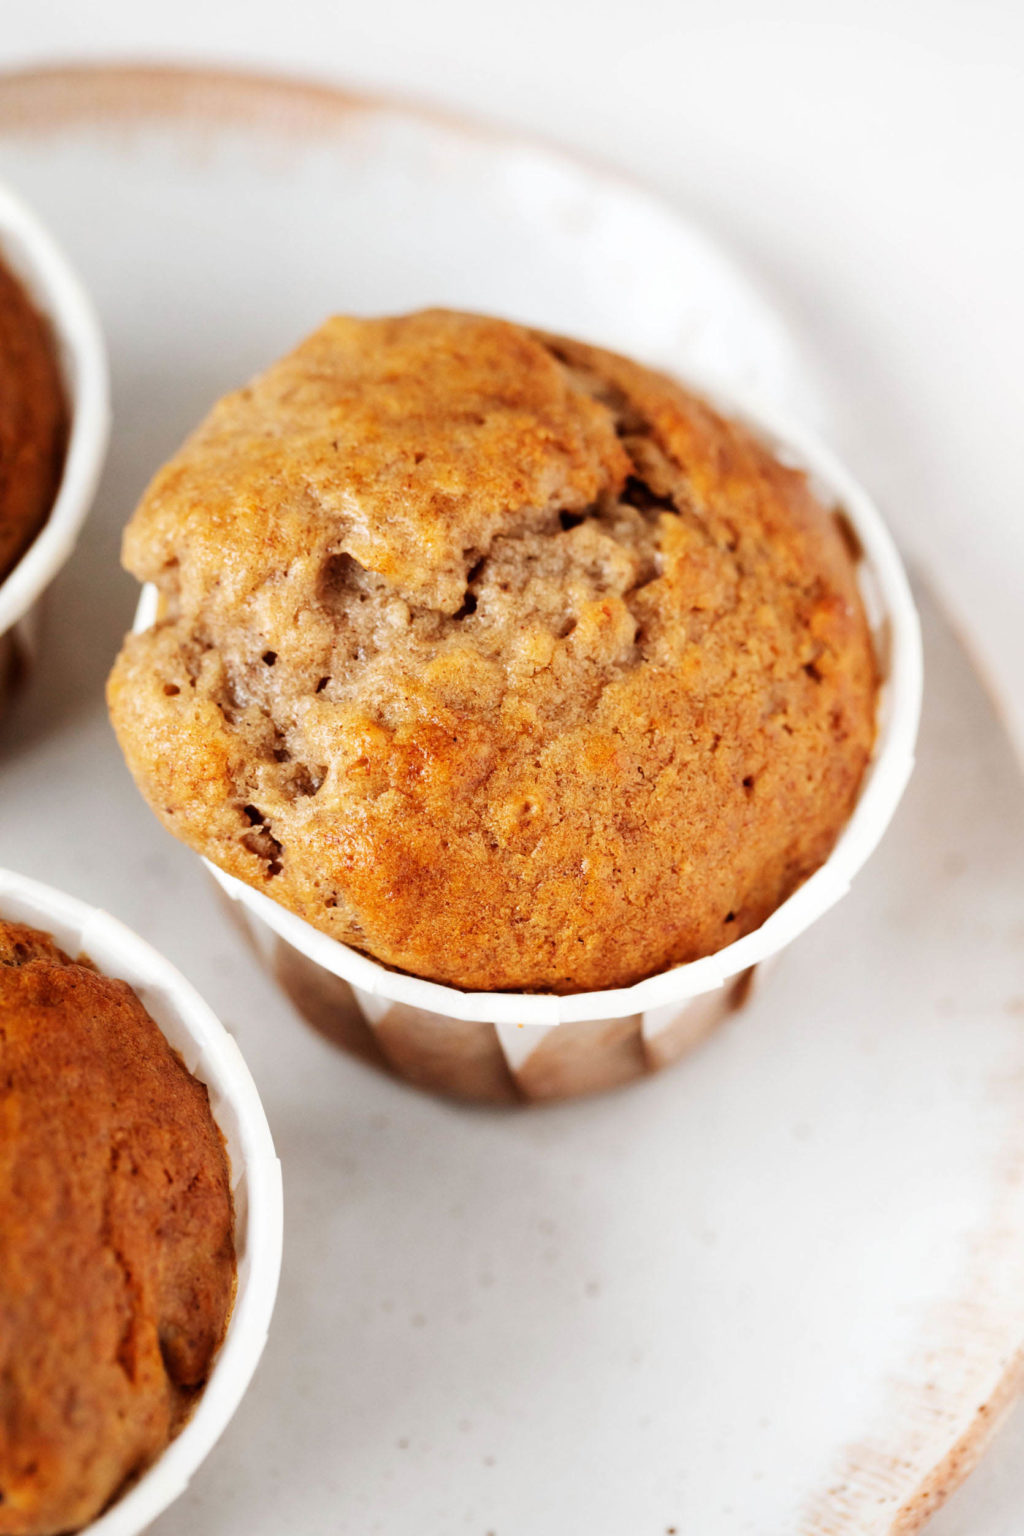 A close up image of a rounded, freshly baked muffin in its liner, resting on a plate.